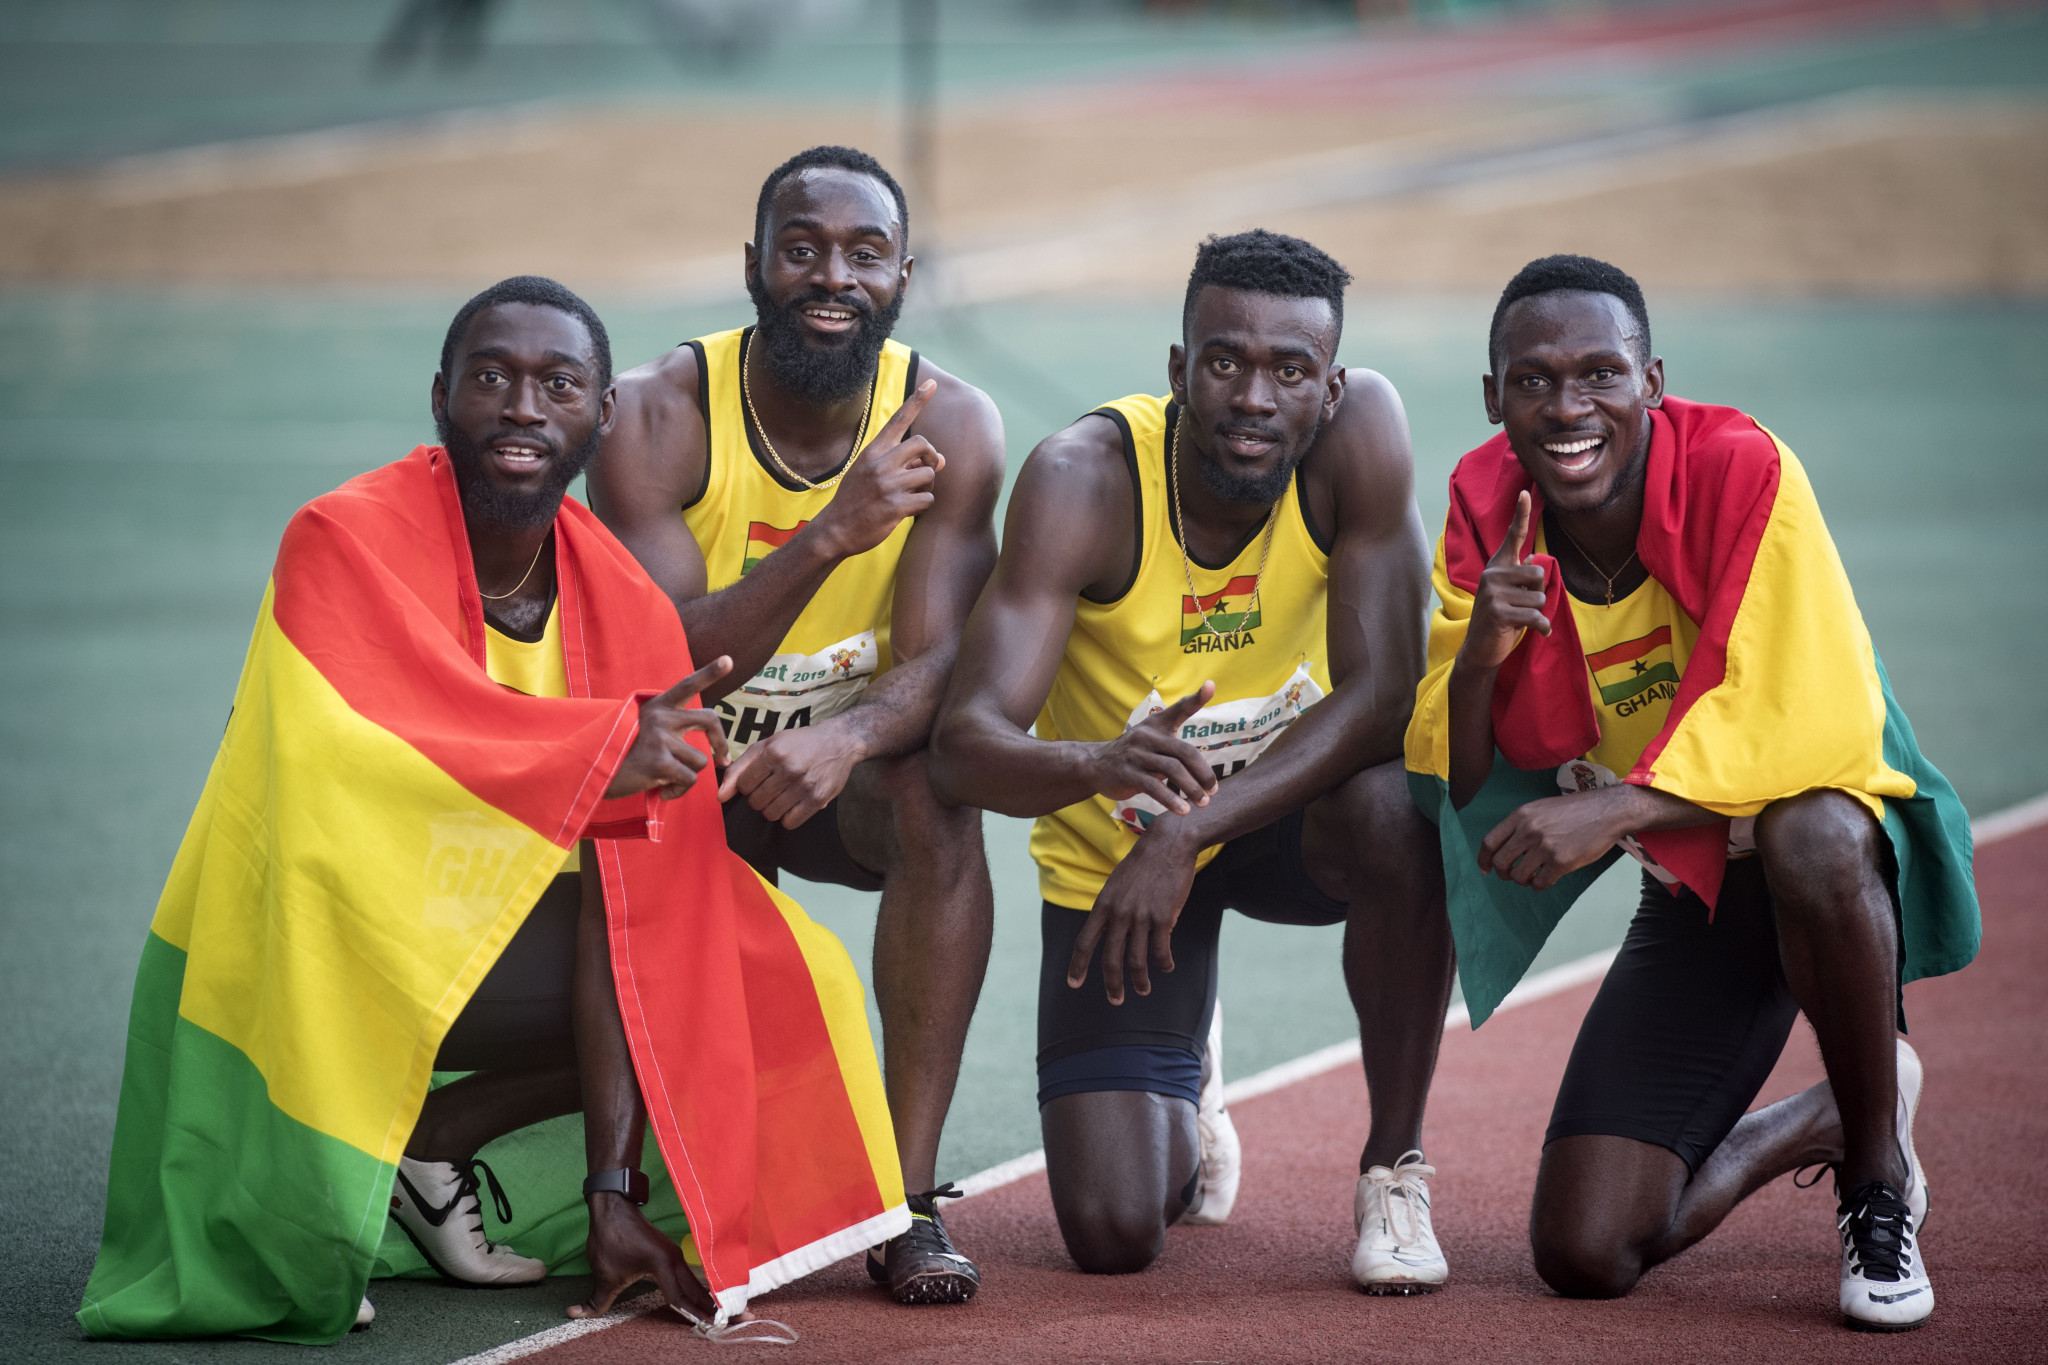 National Sports Authority calls on all Ghanaian sporting federations to target medals at 2023 African Games